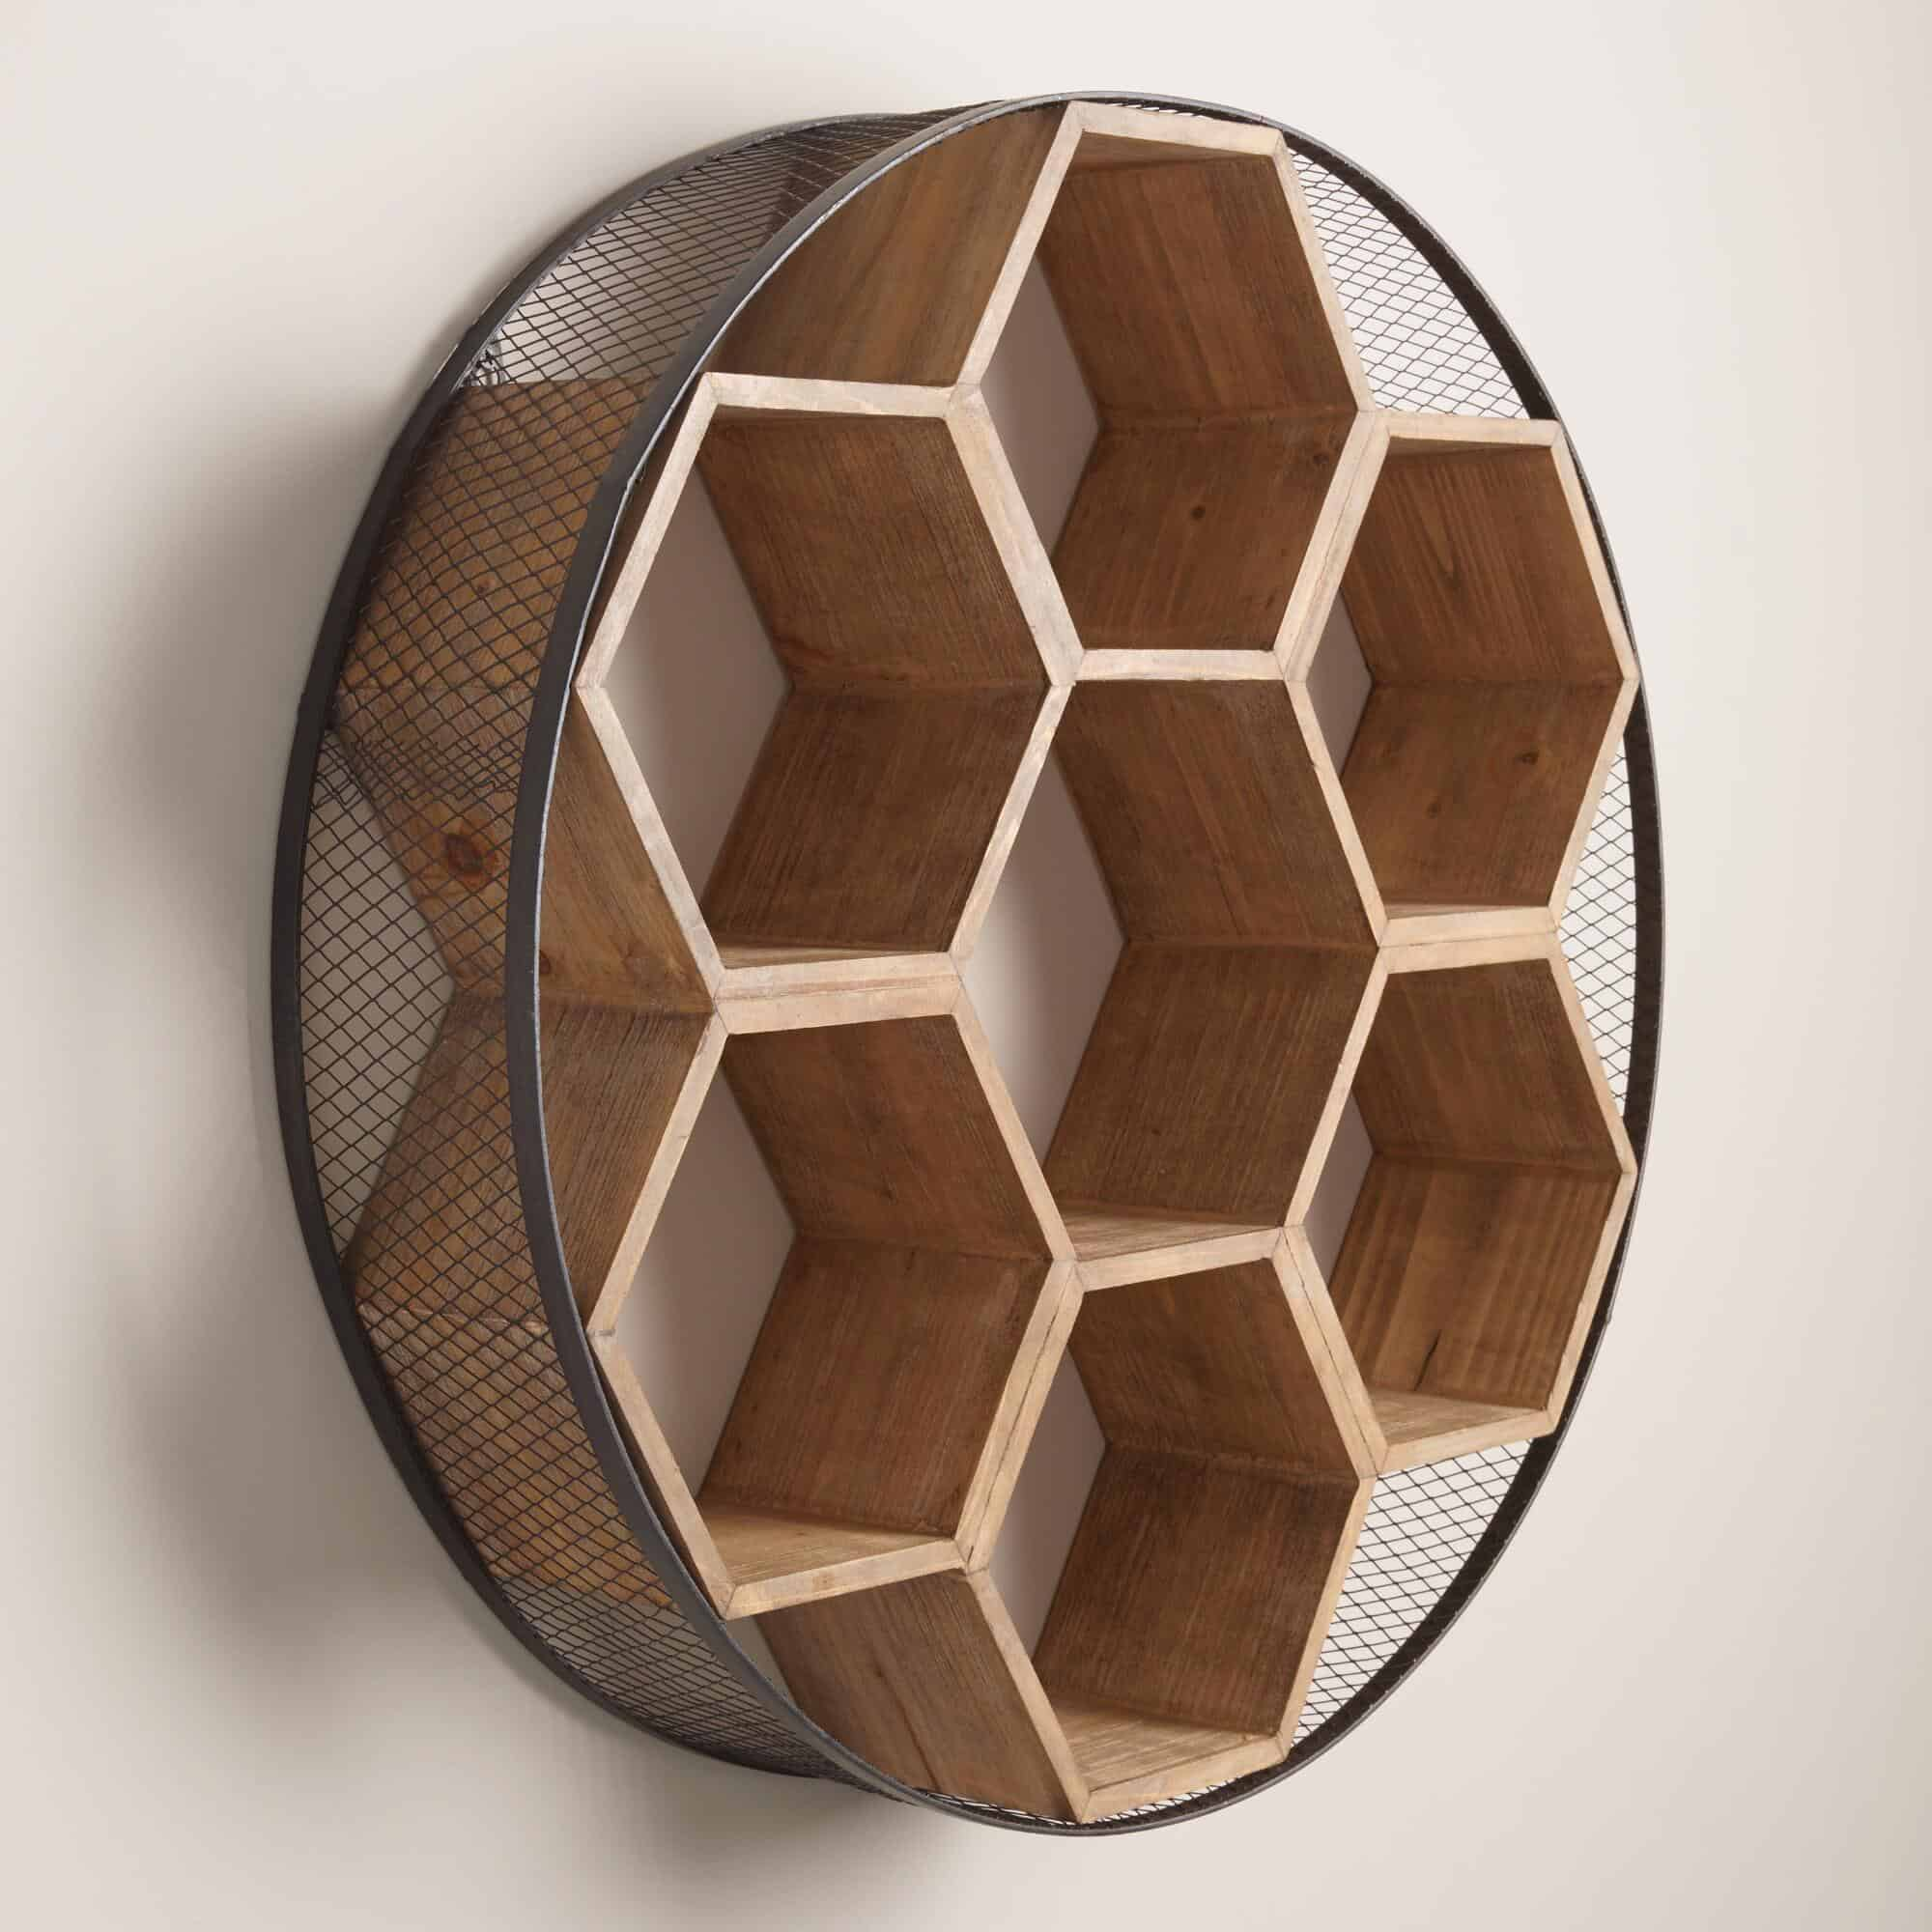 Round Metal and Wood Honeycomb Bookshelf